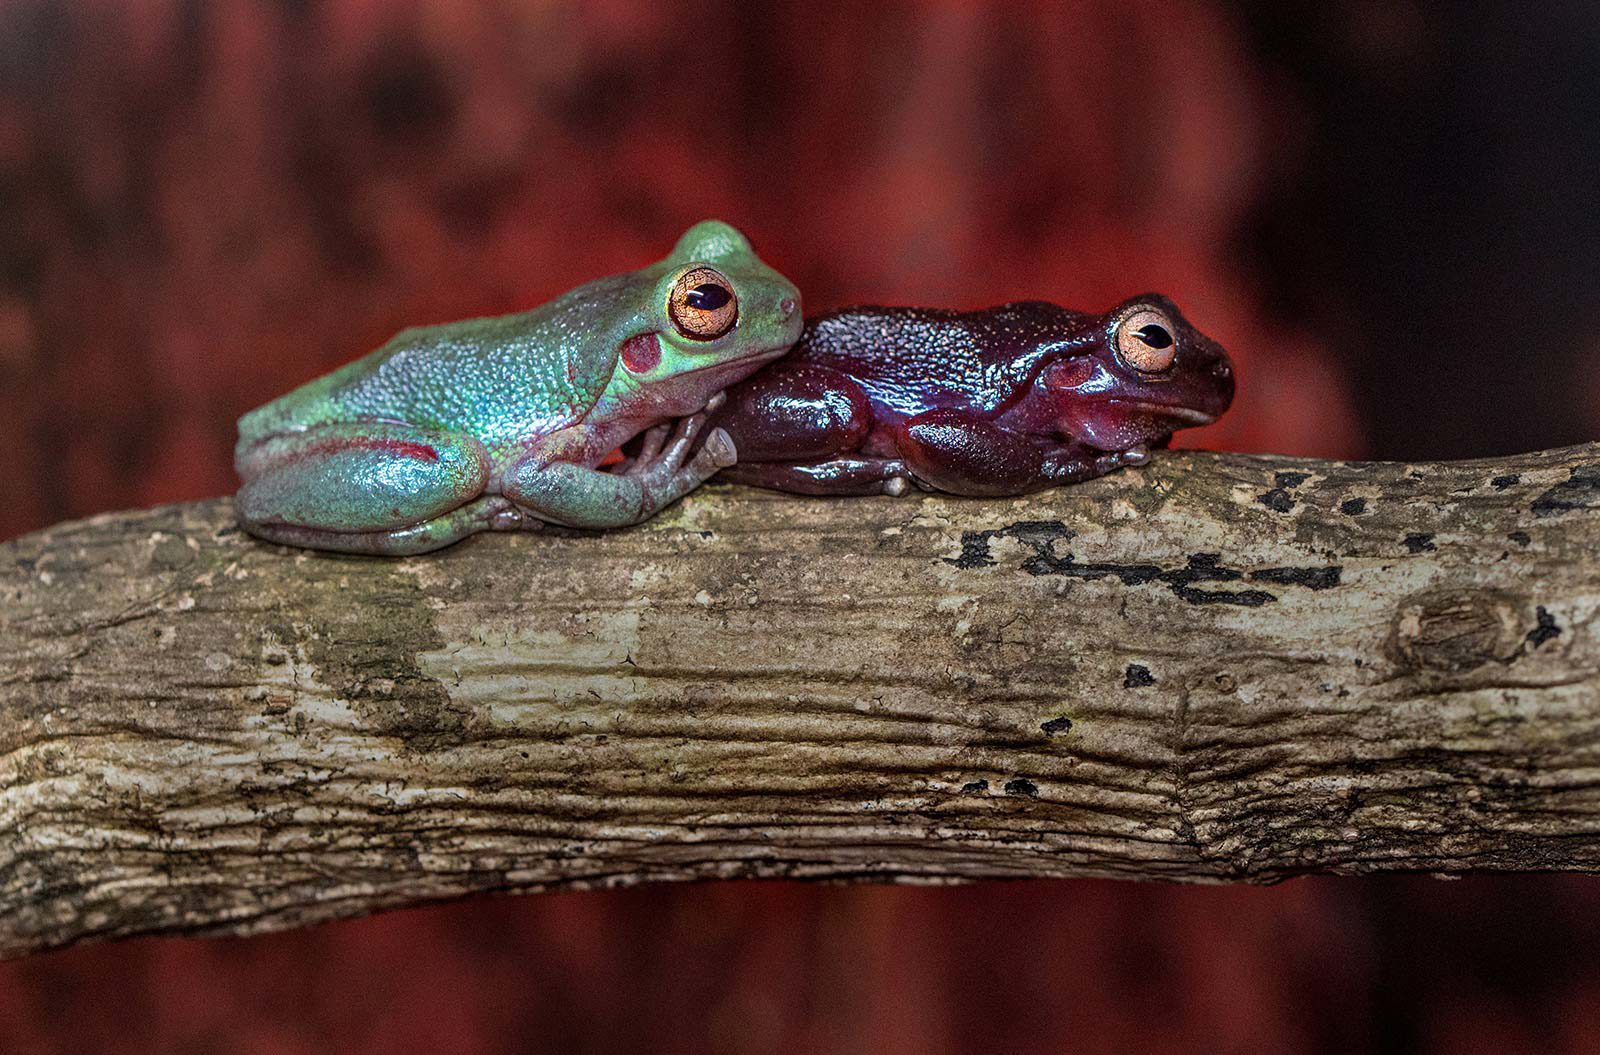 Green frog sitting on branch resting head on back red frog.